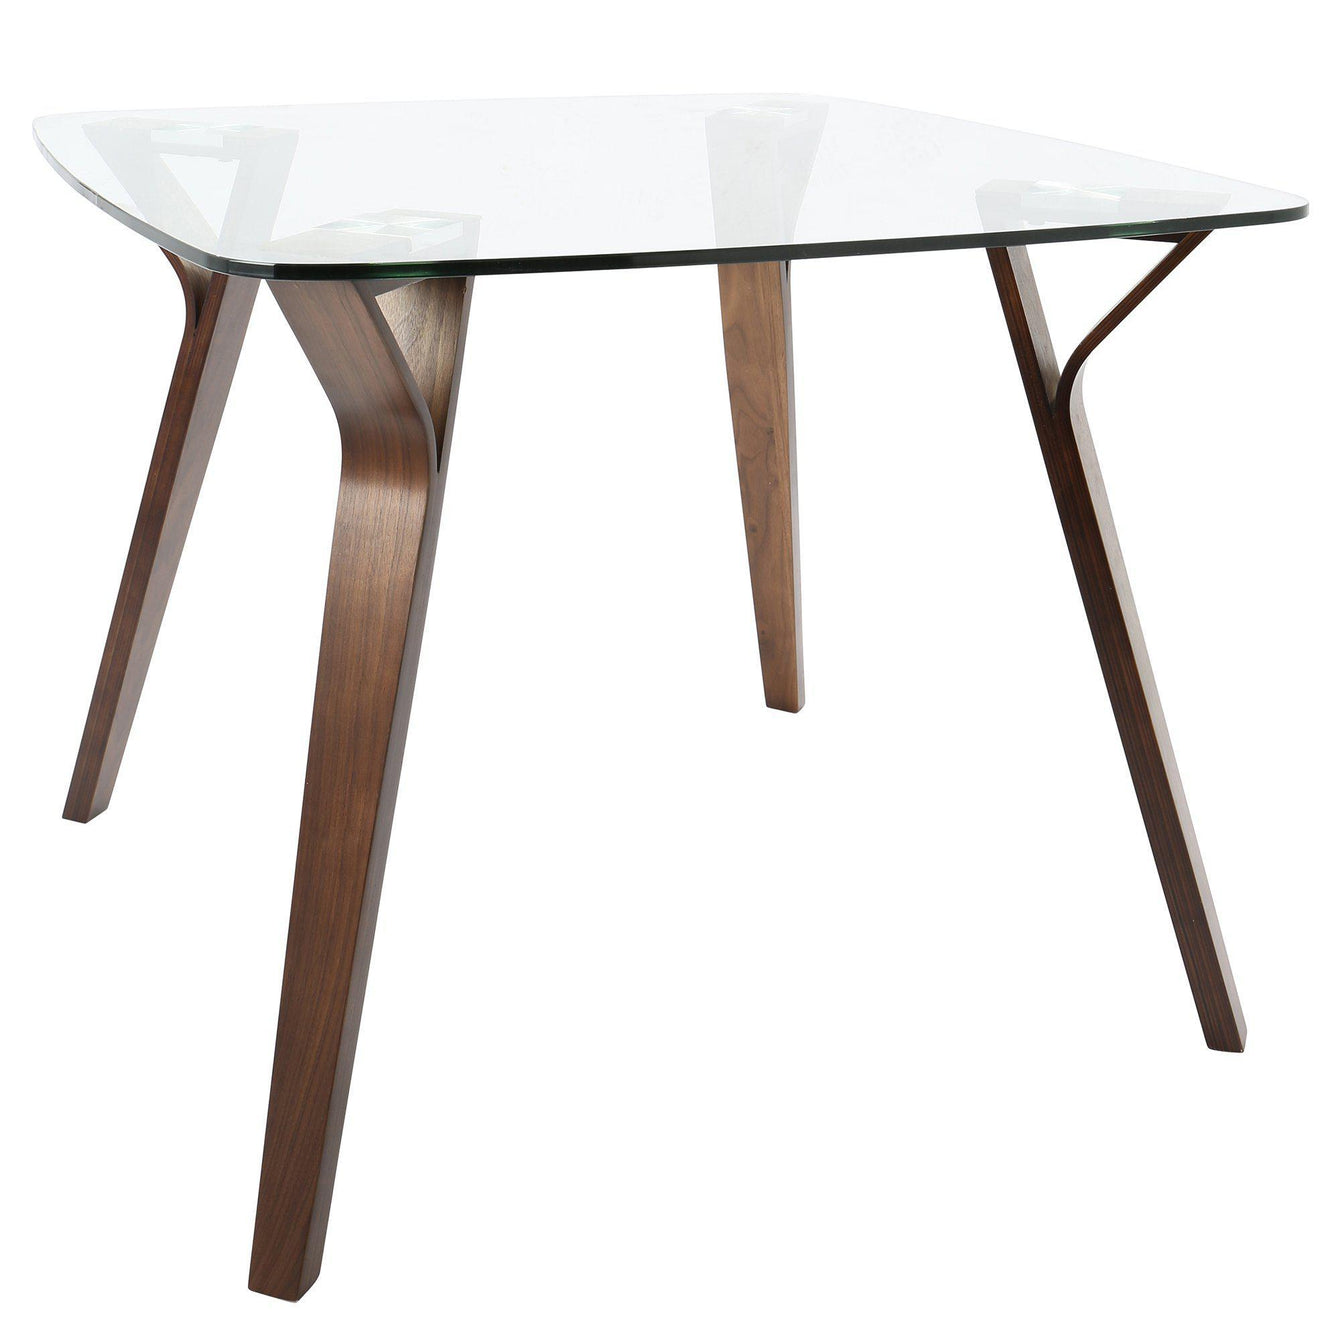 Folia Mid-Century Modern Dining Table in Walnut and Glass-LUMISOURCE-Peccadilly